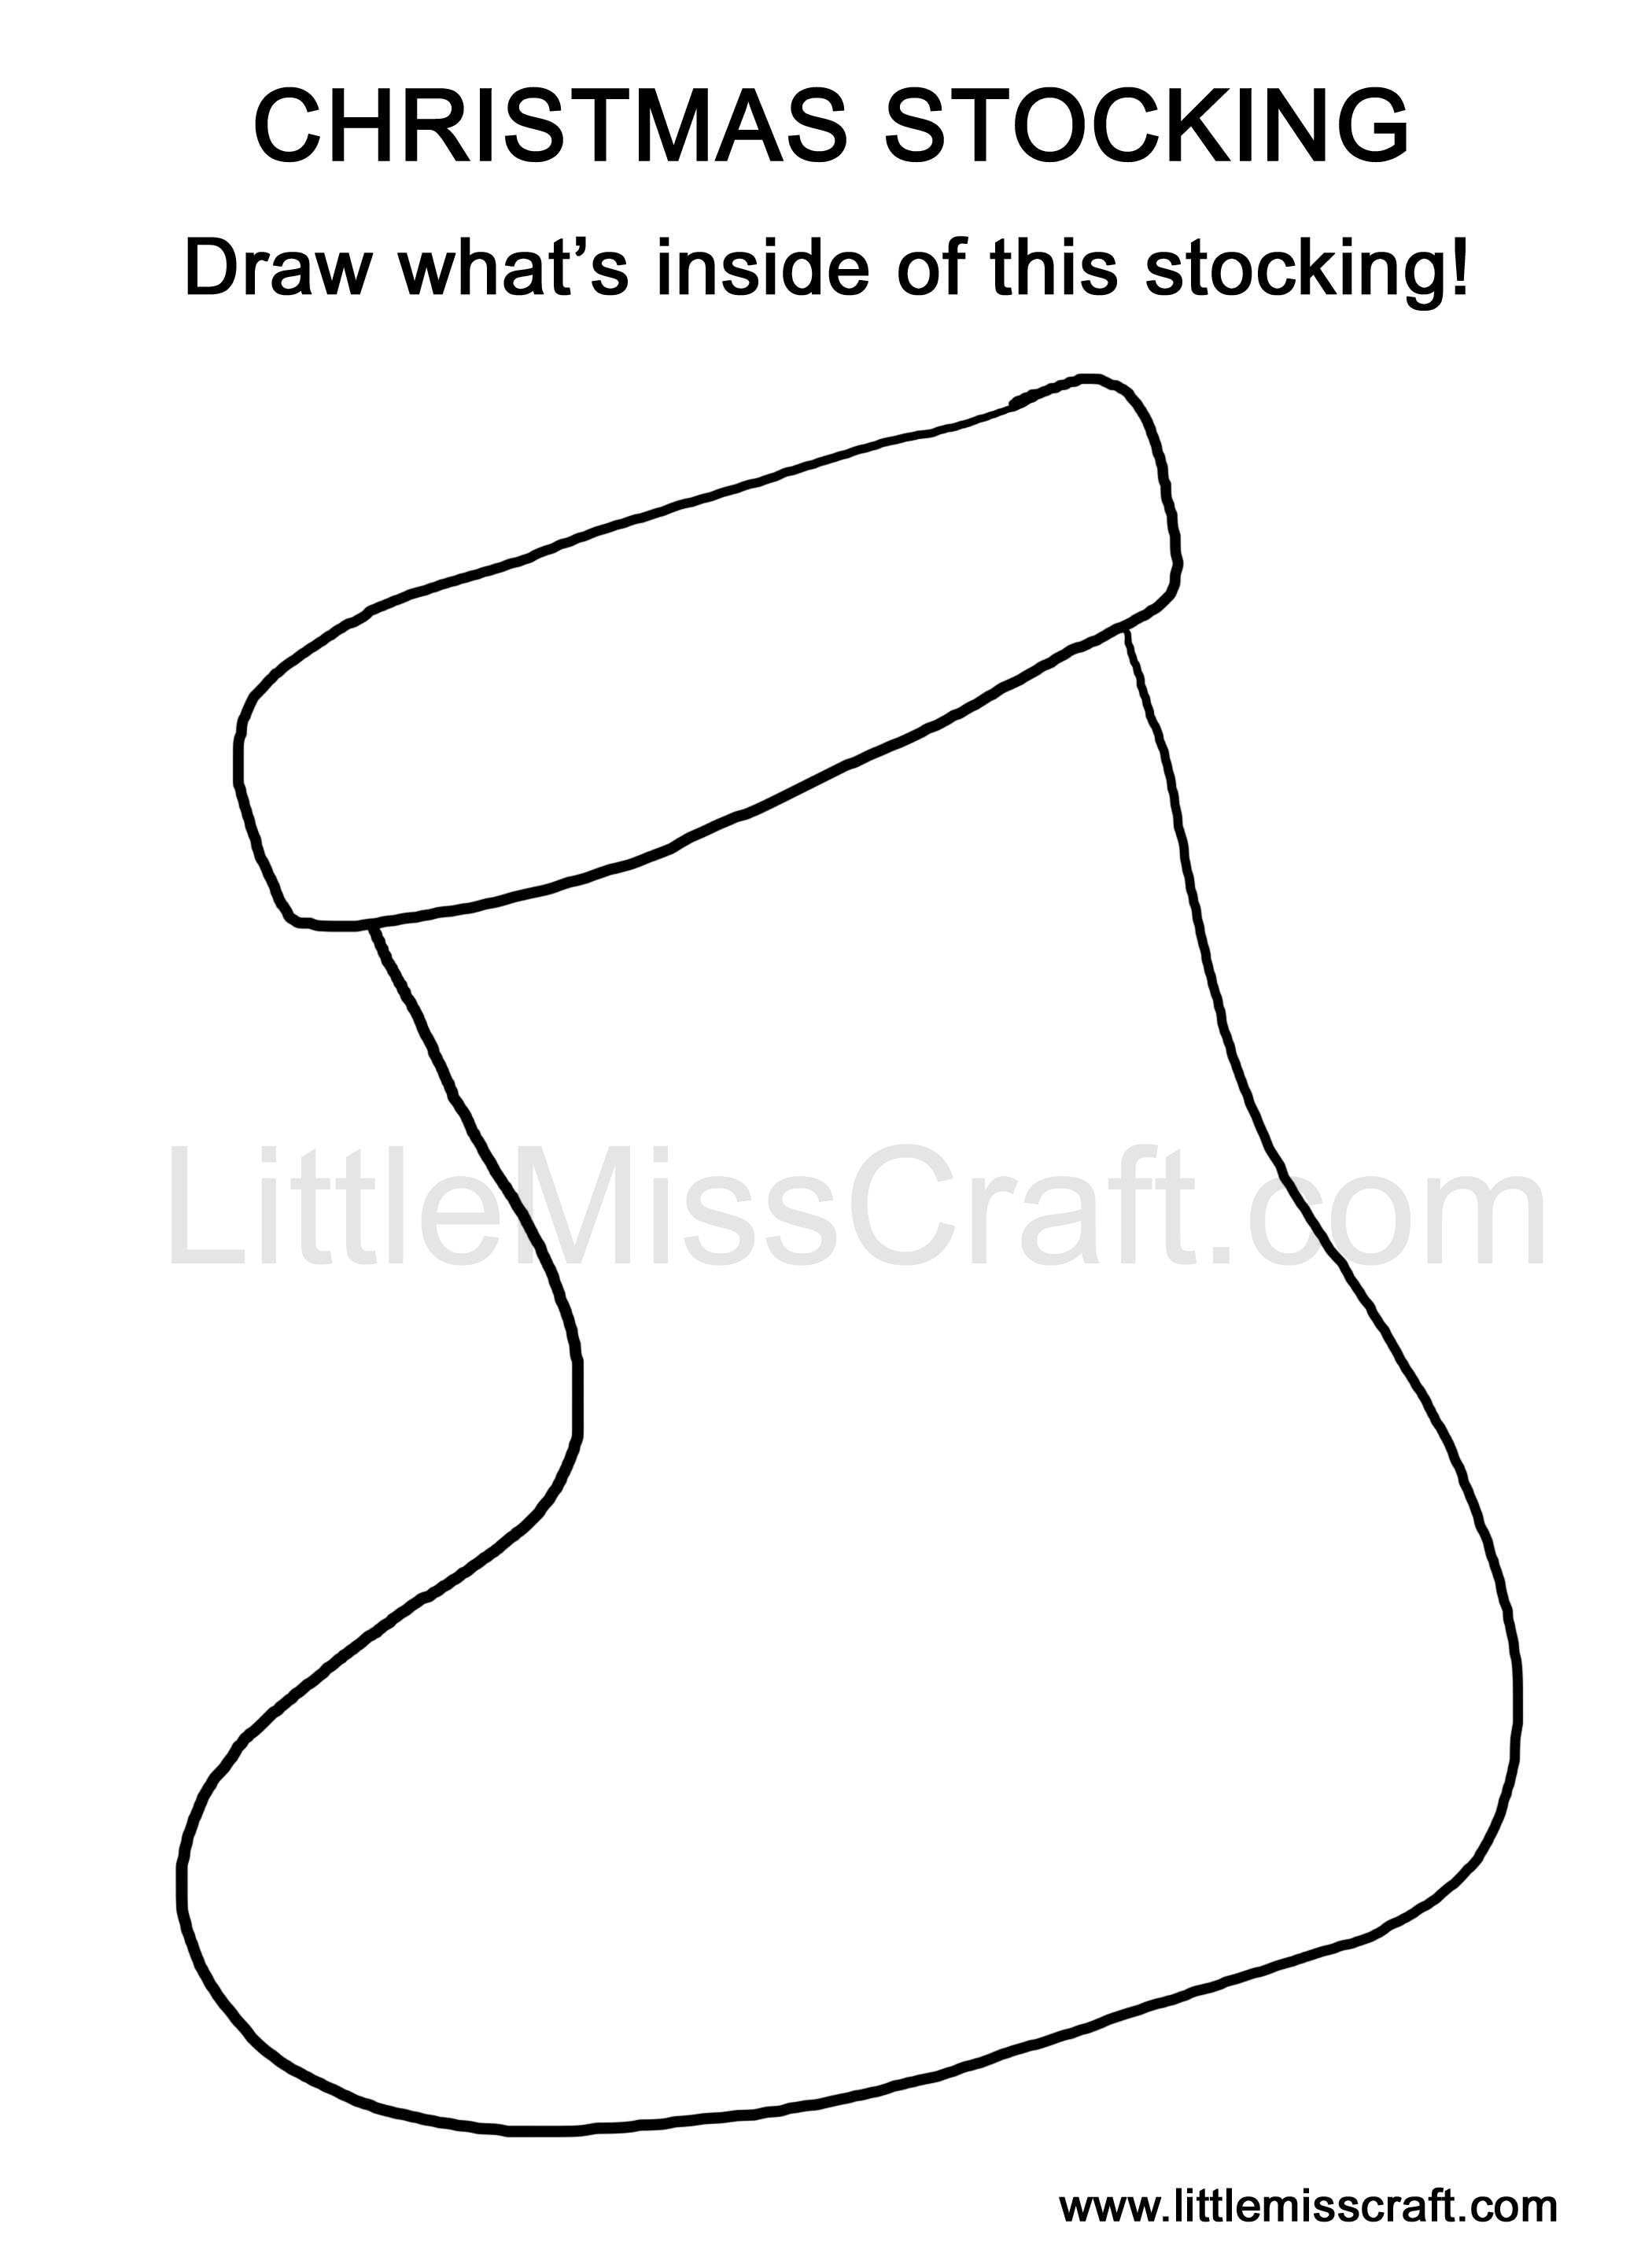 Clip Art Christmas Stocking Coloring Pages Pattern crafts christmas stocking doodle coloring page page